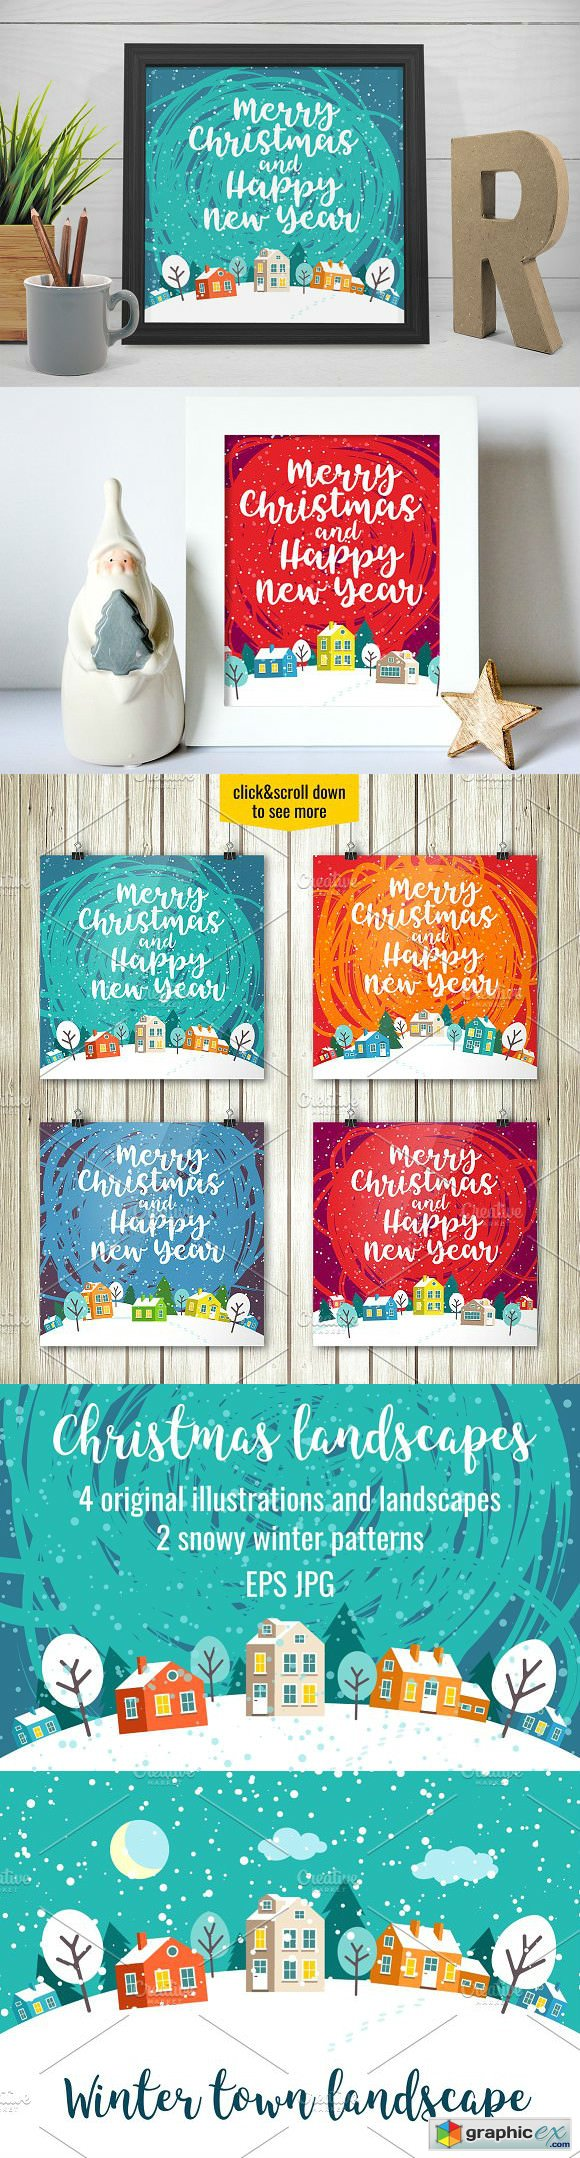 Greeting Christmas cards and pattern